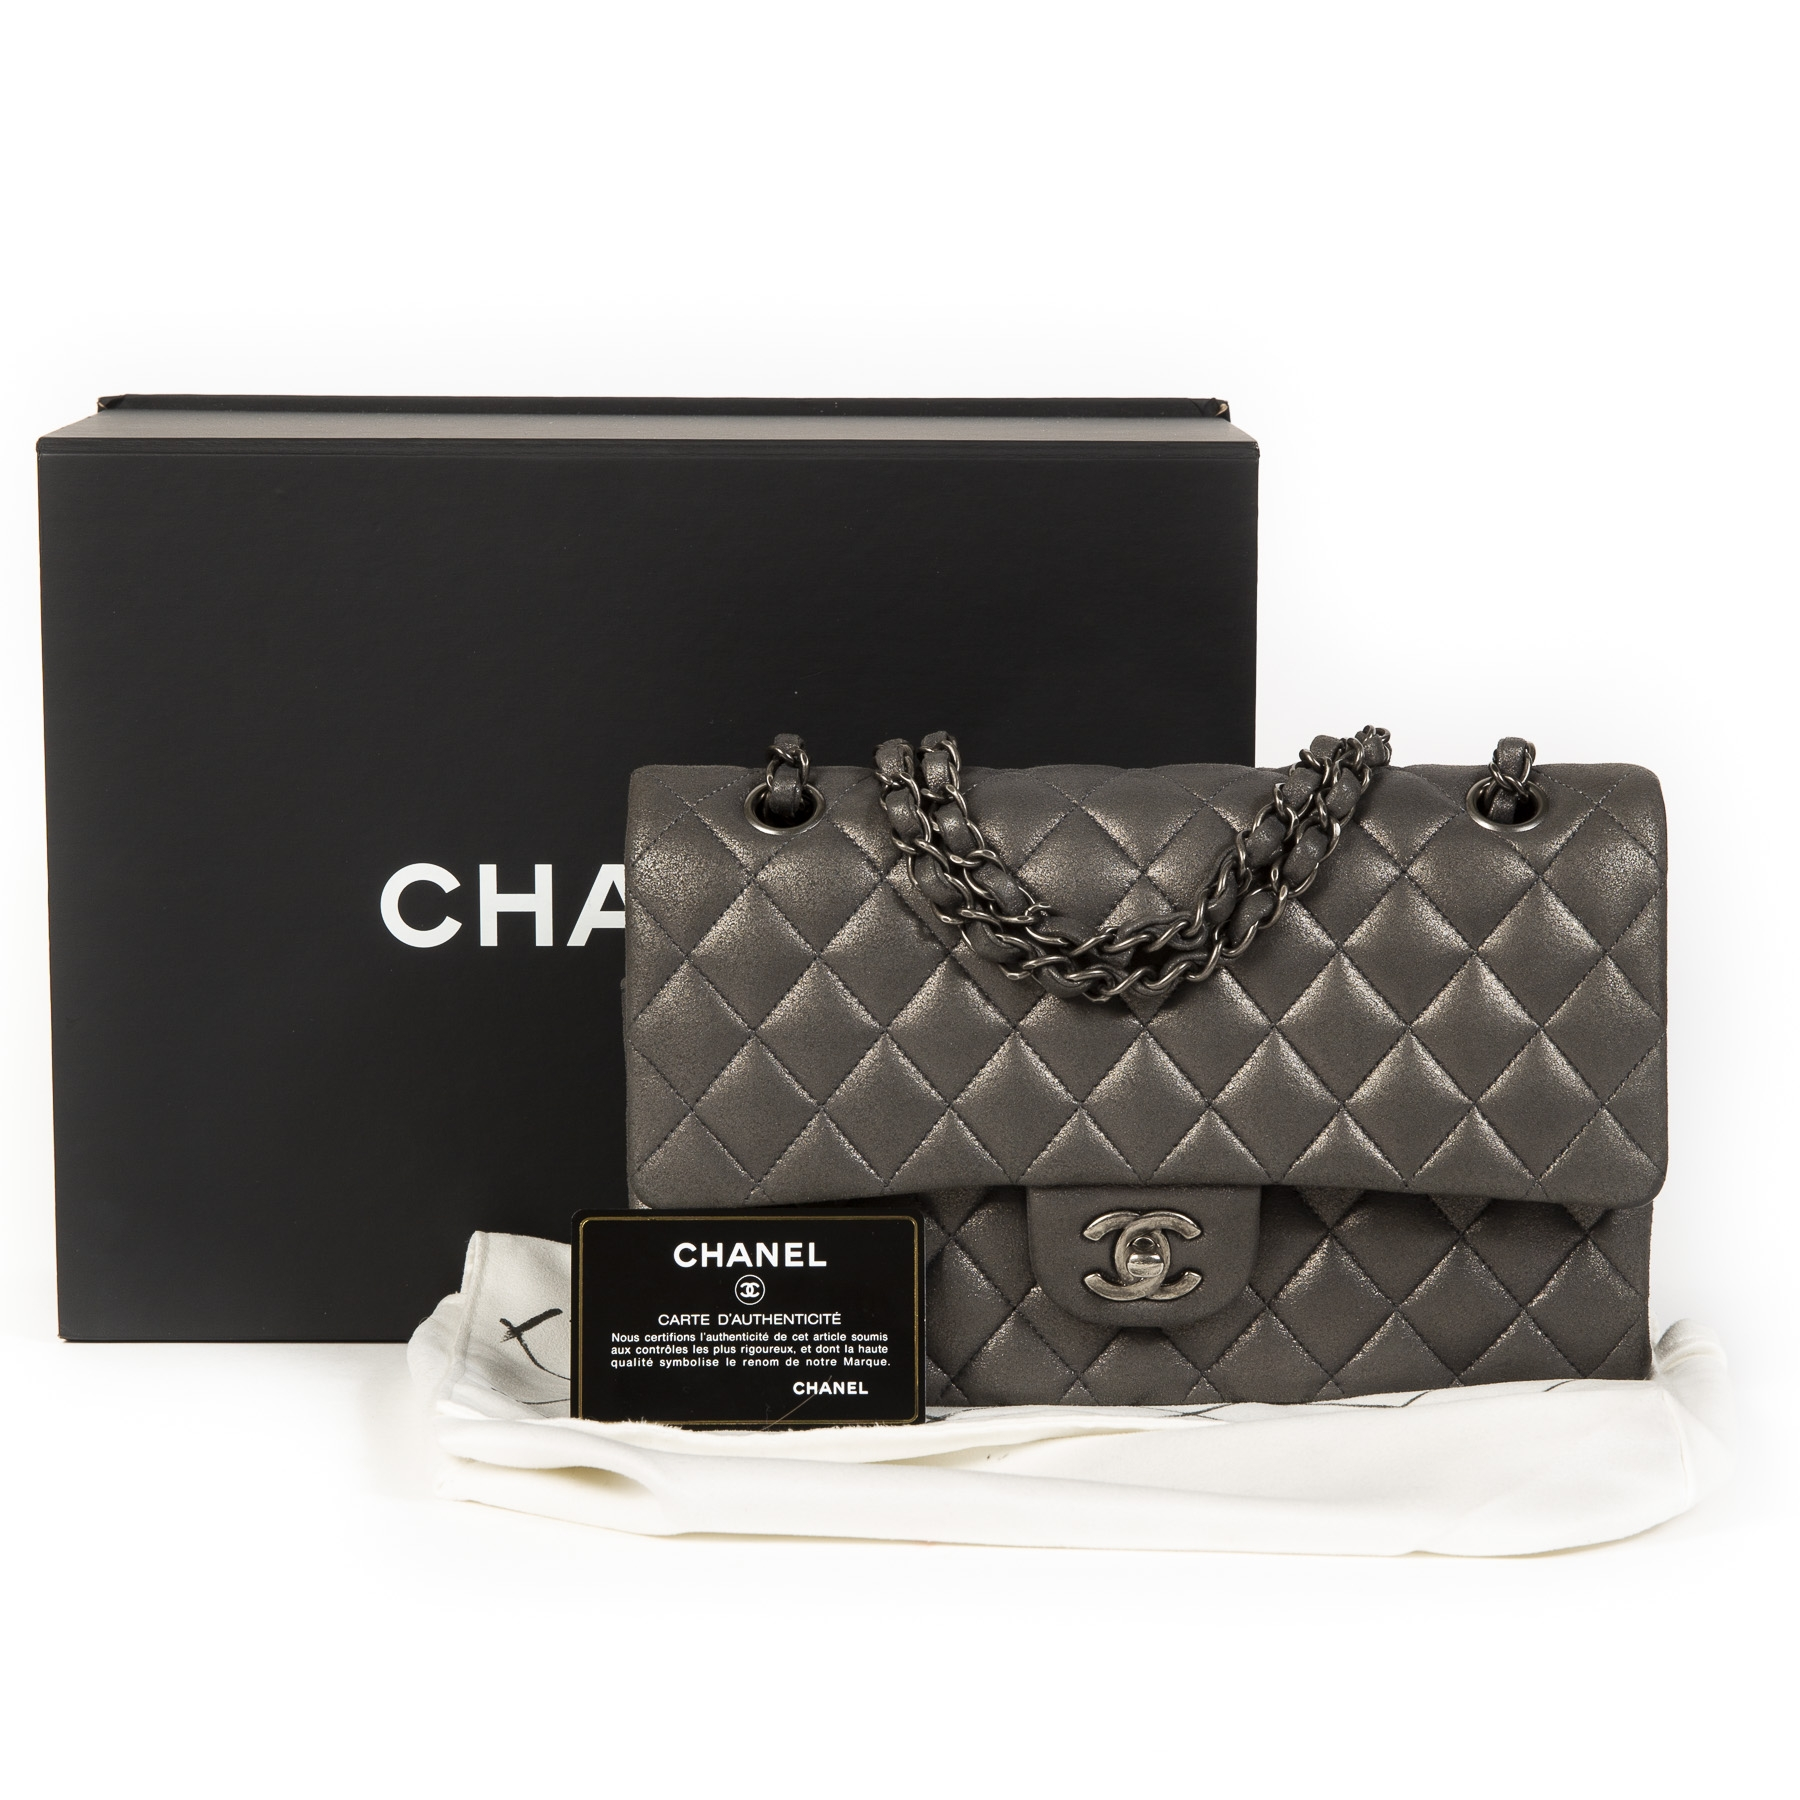 d586fae1e99ed1 ... Authentique seconde main vintage Chanel Medium Classic Flapbag Metallic  Silver achète en ligne webshop LabelLOV